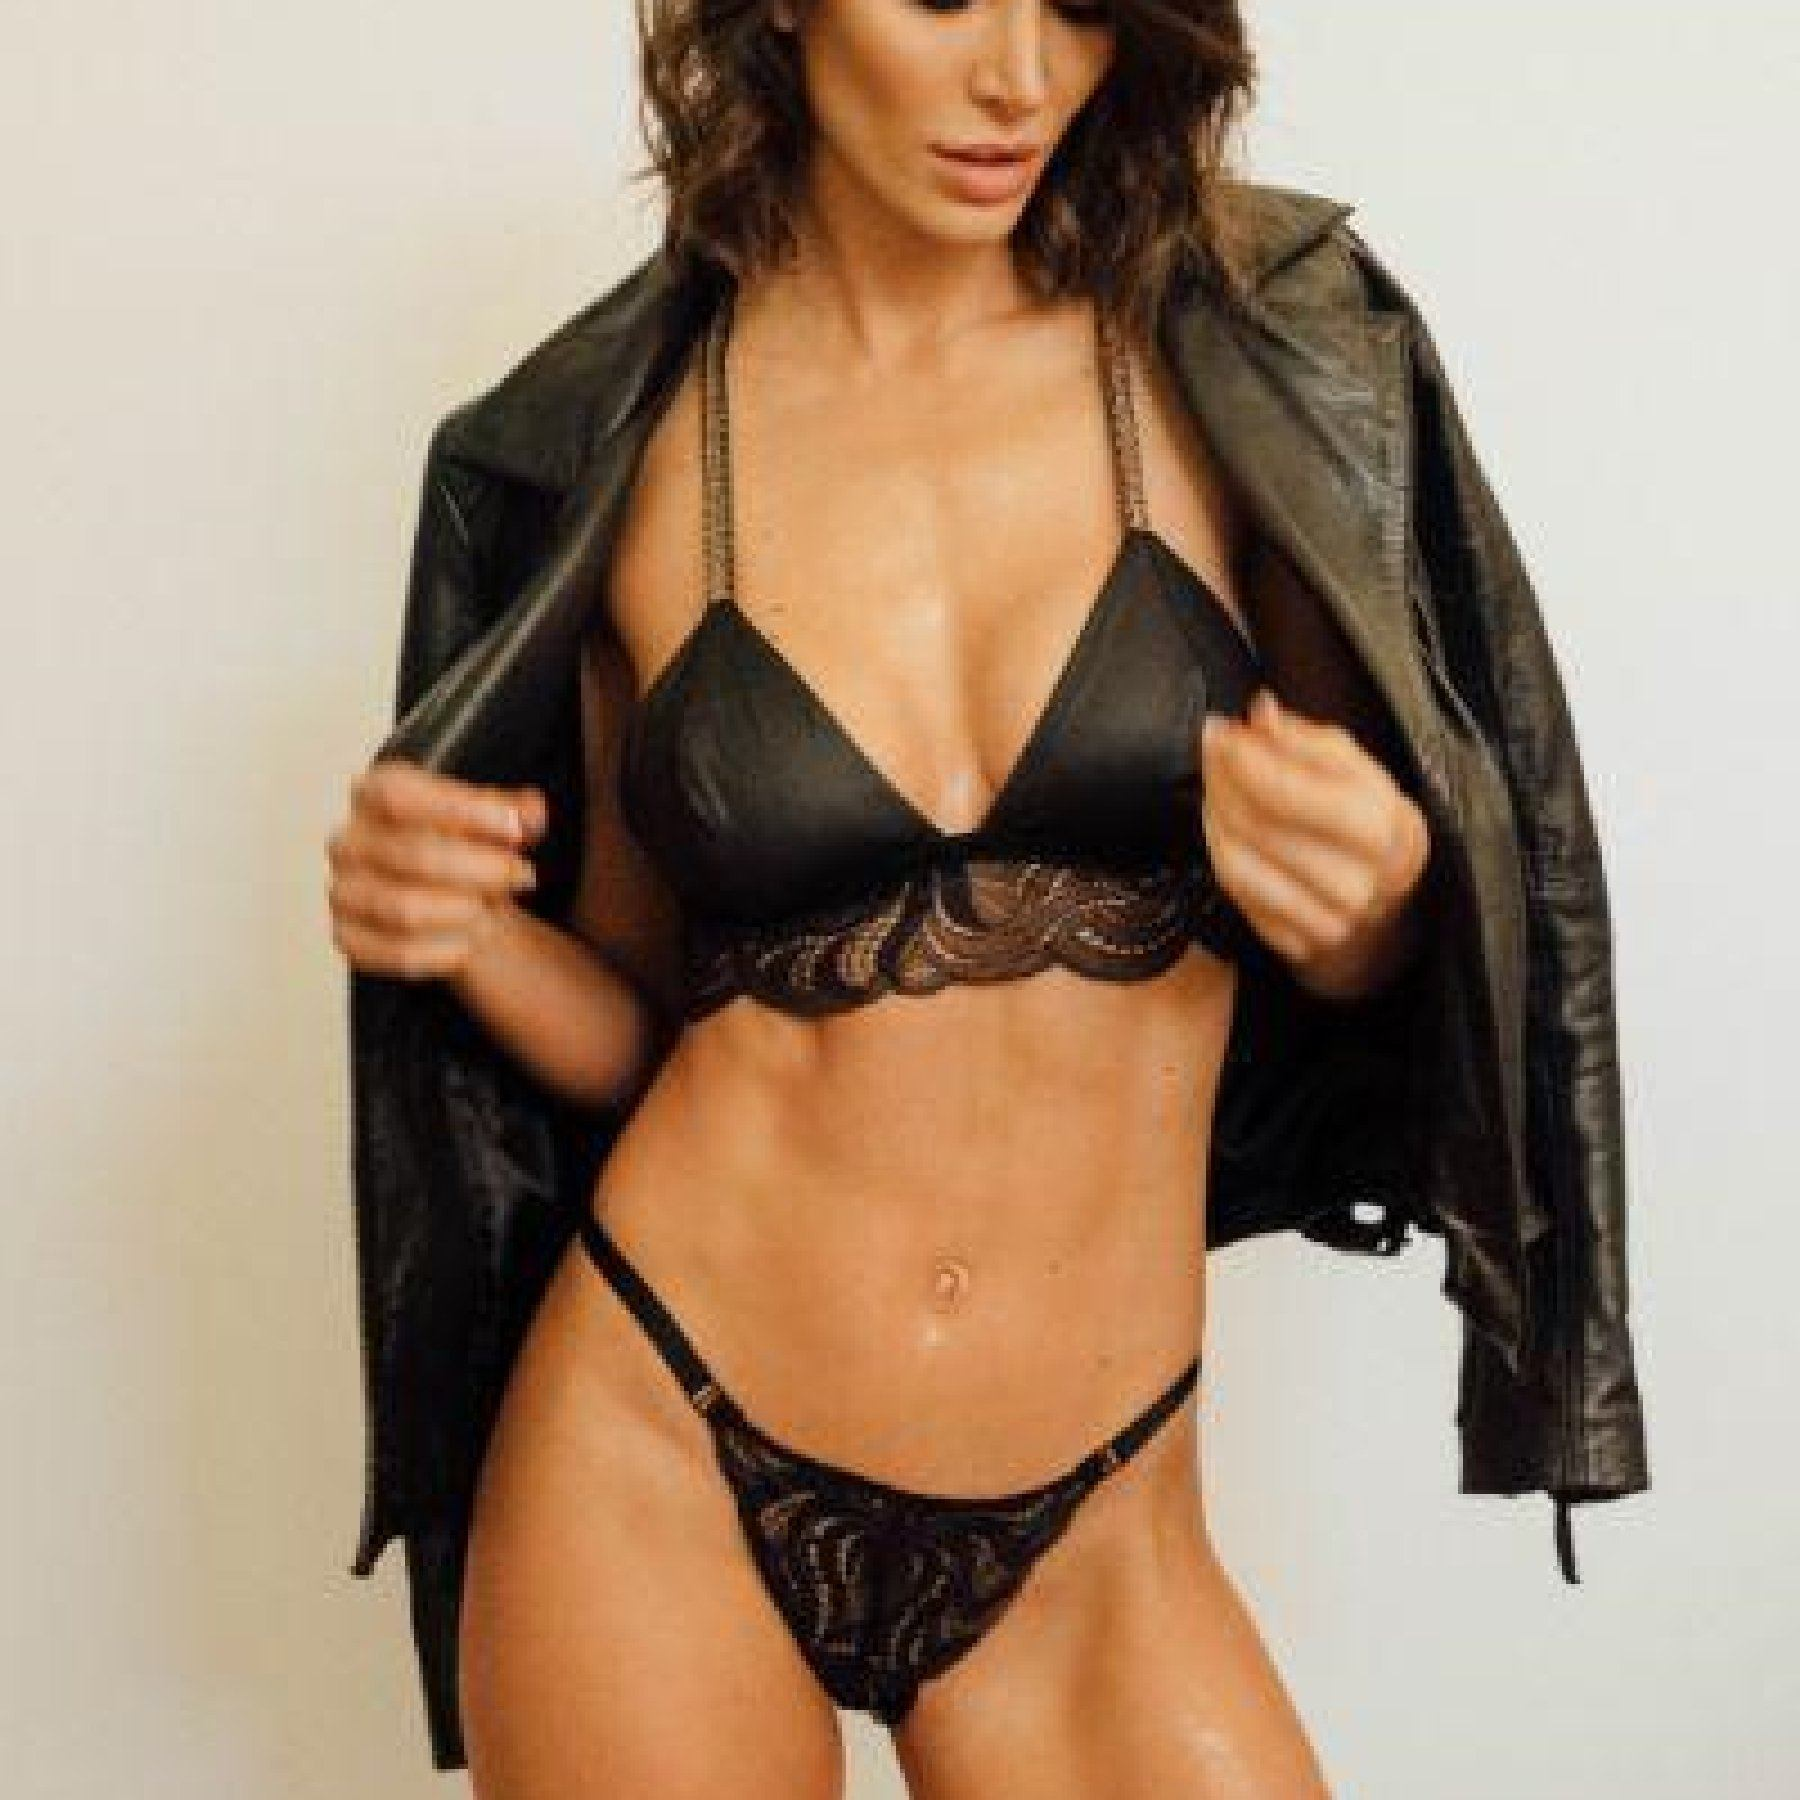 woman wearing black lace bralette and panty with leather jacket